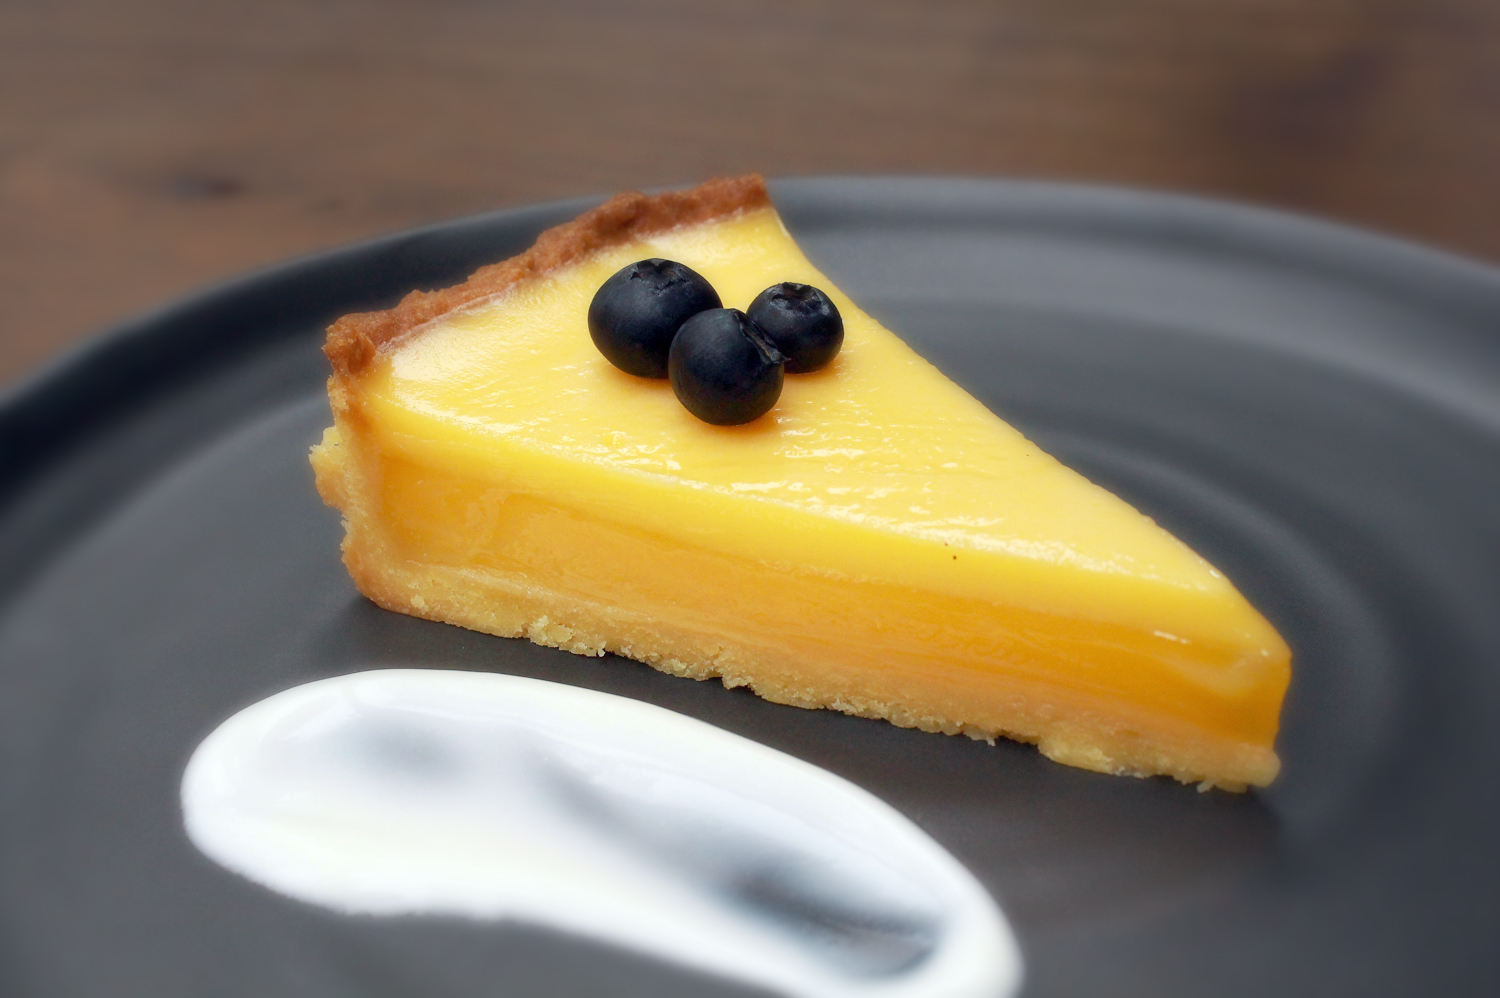 Lemon slice.jpg